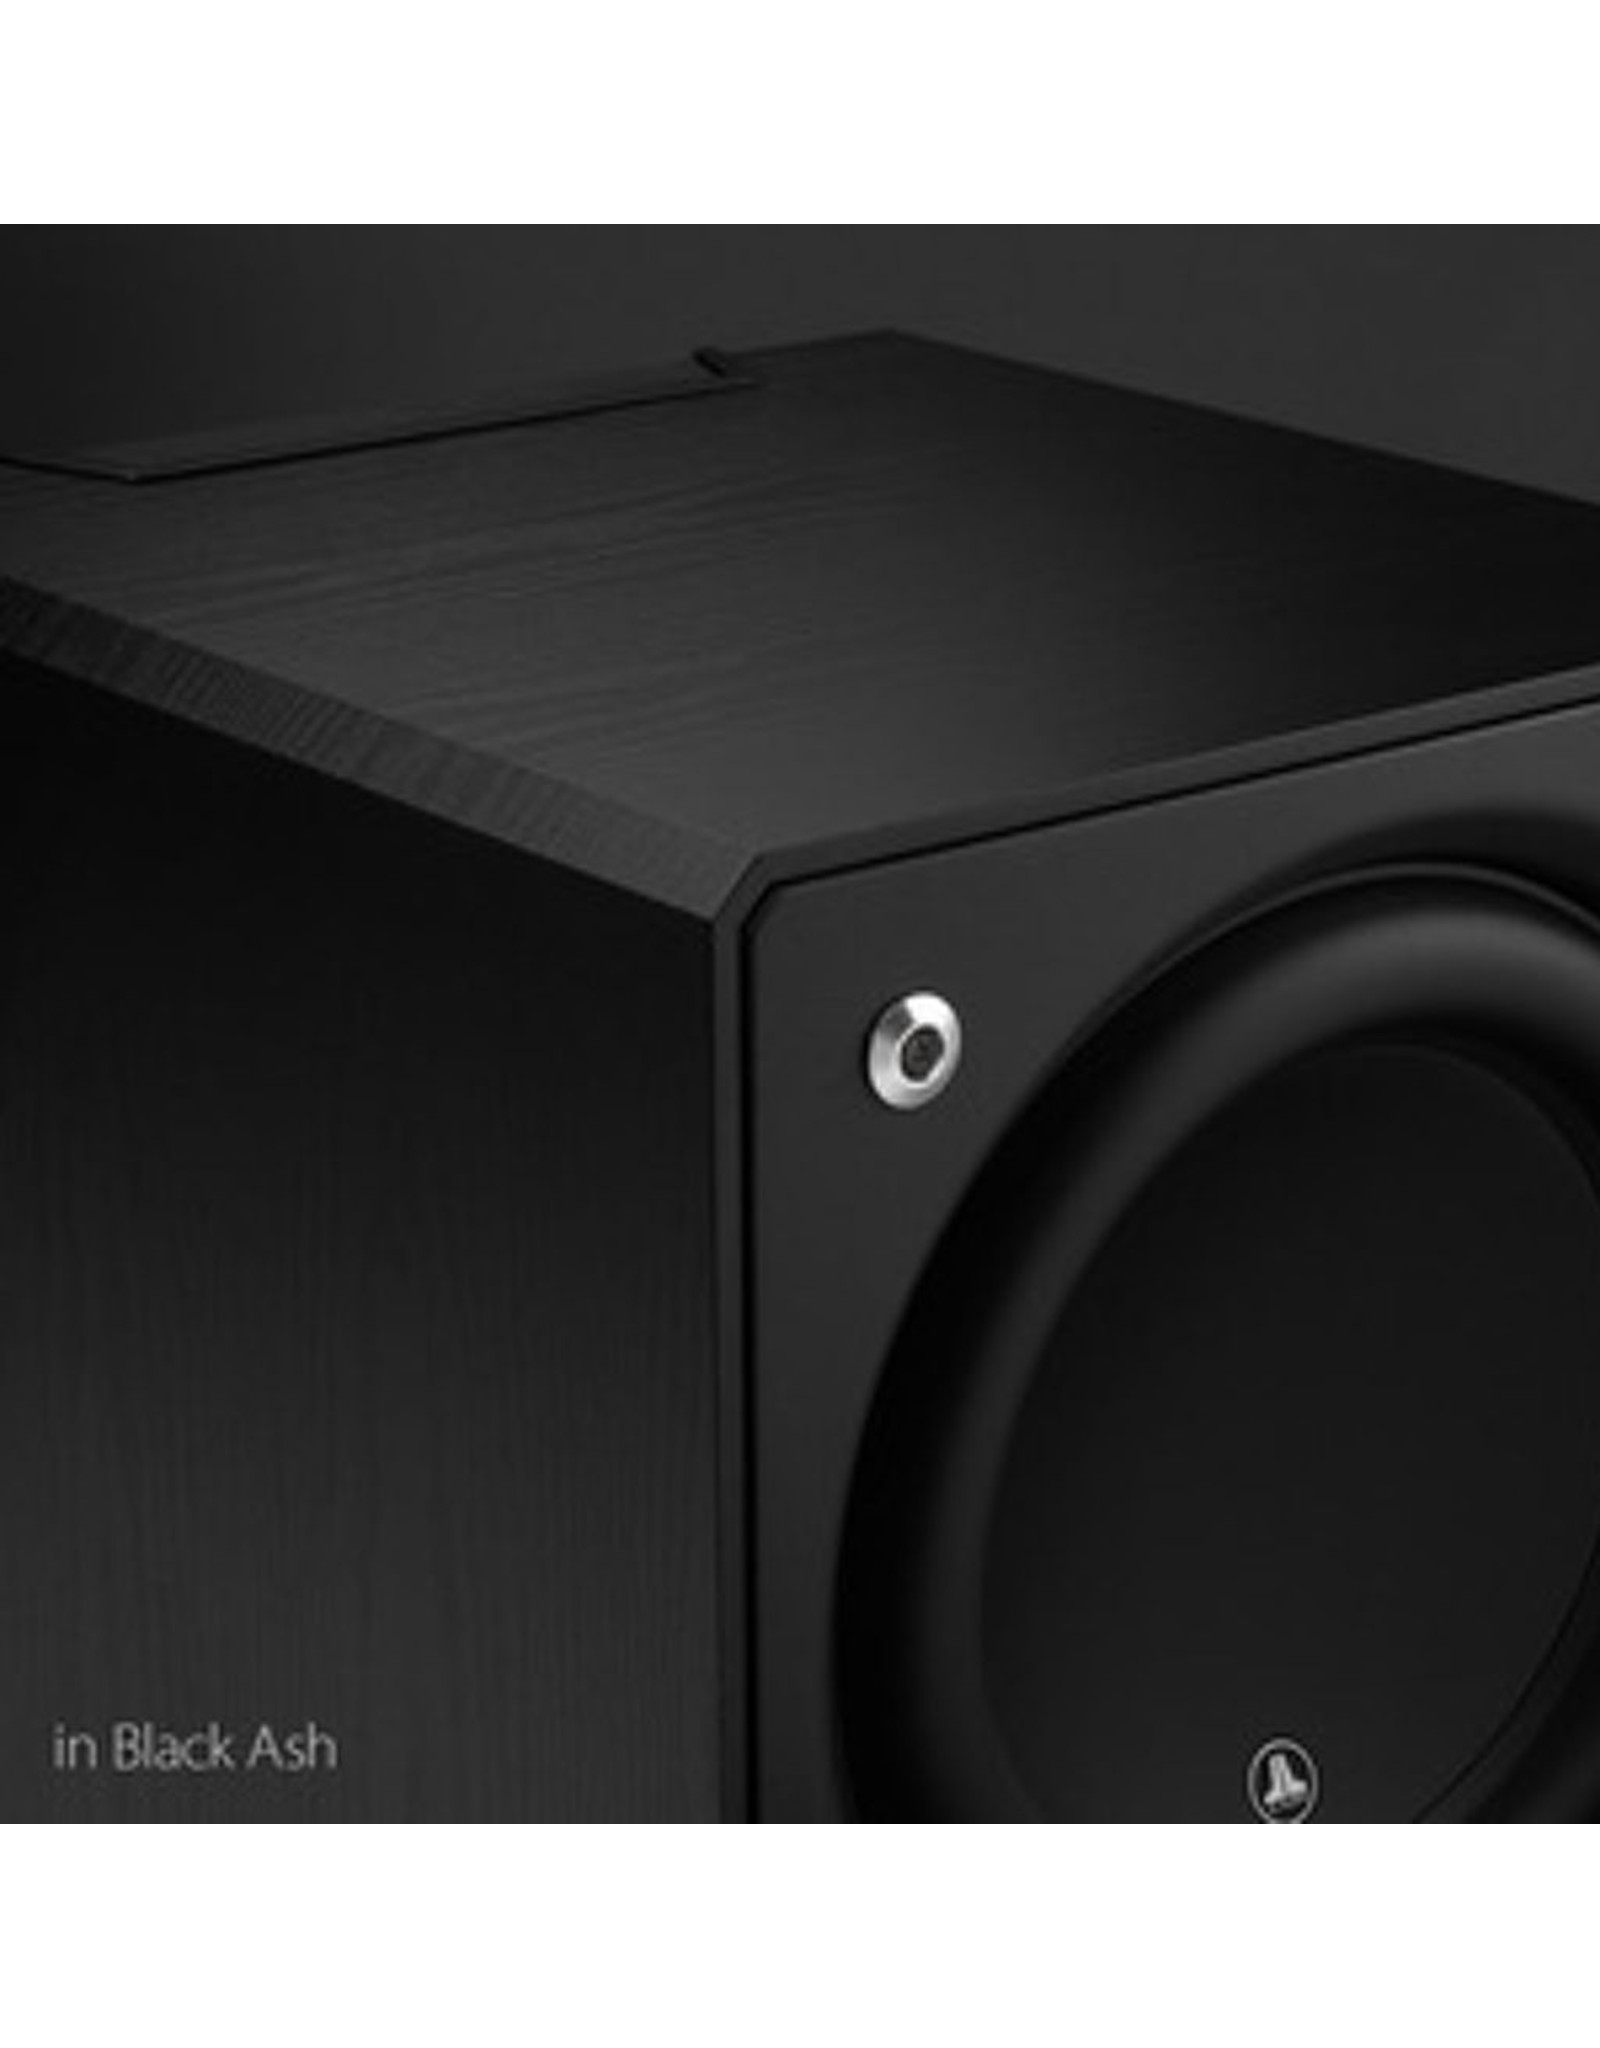 JL AUDIO JL AUDIO e110 10'' E-Sub 1200W Subwoofer, BLACK ASH 	•	343mm W x 362mm H x 419mm D